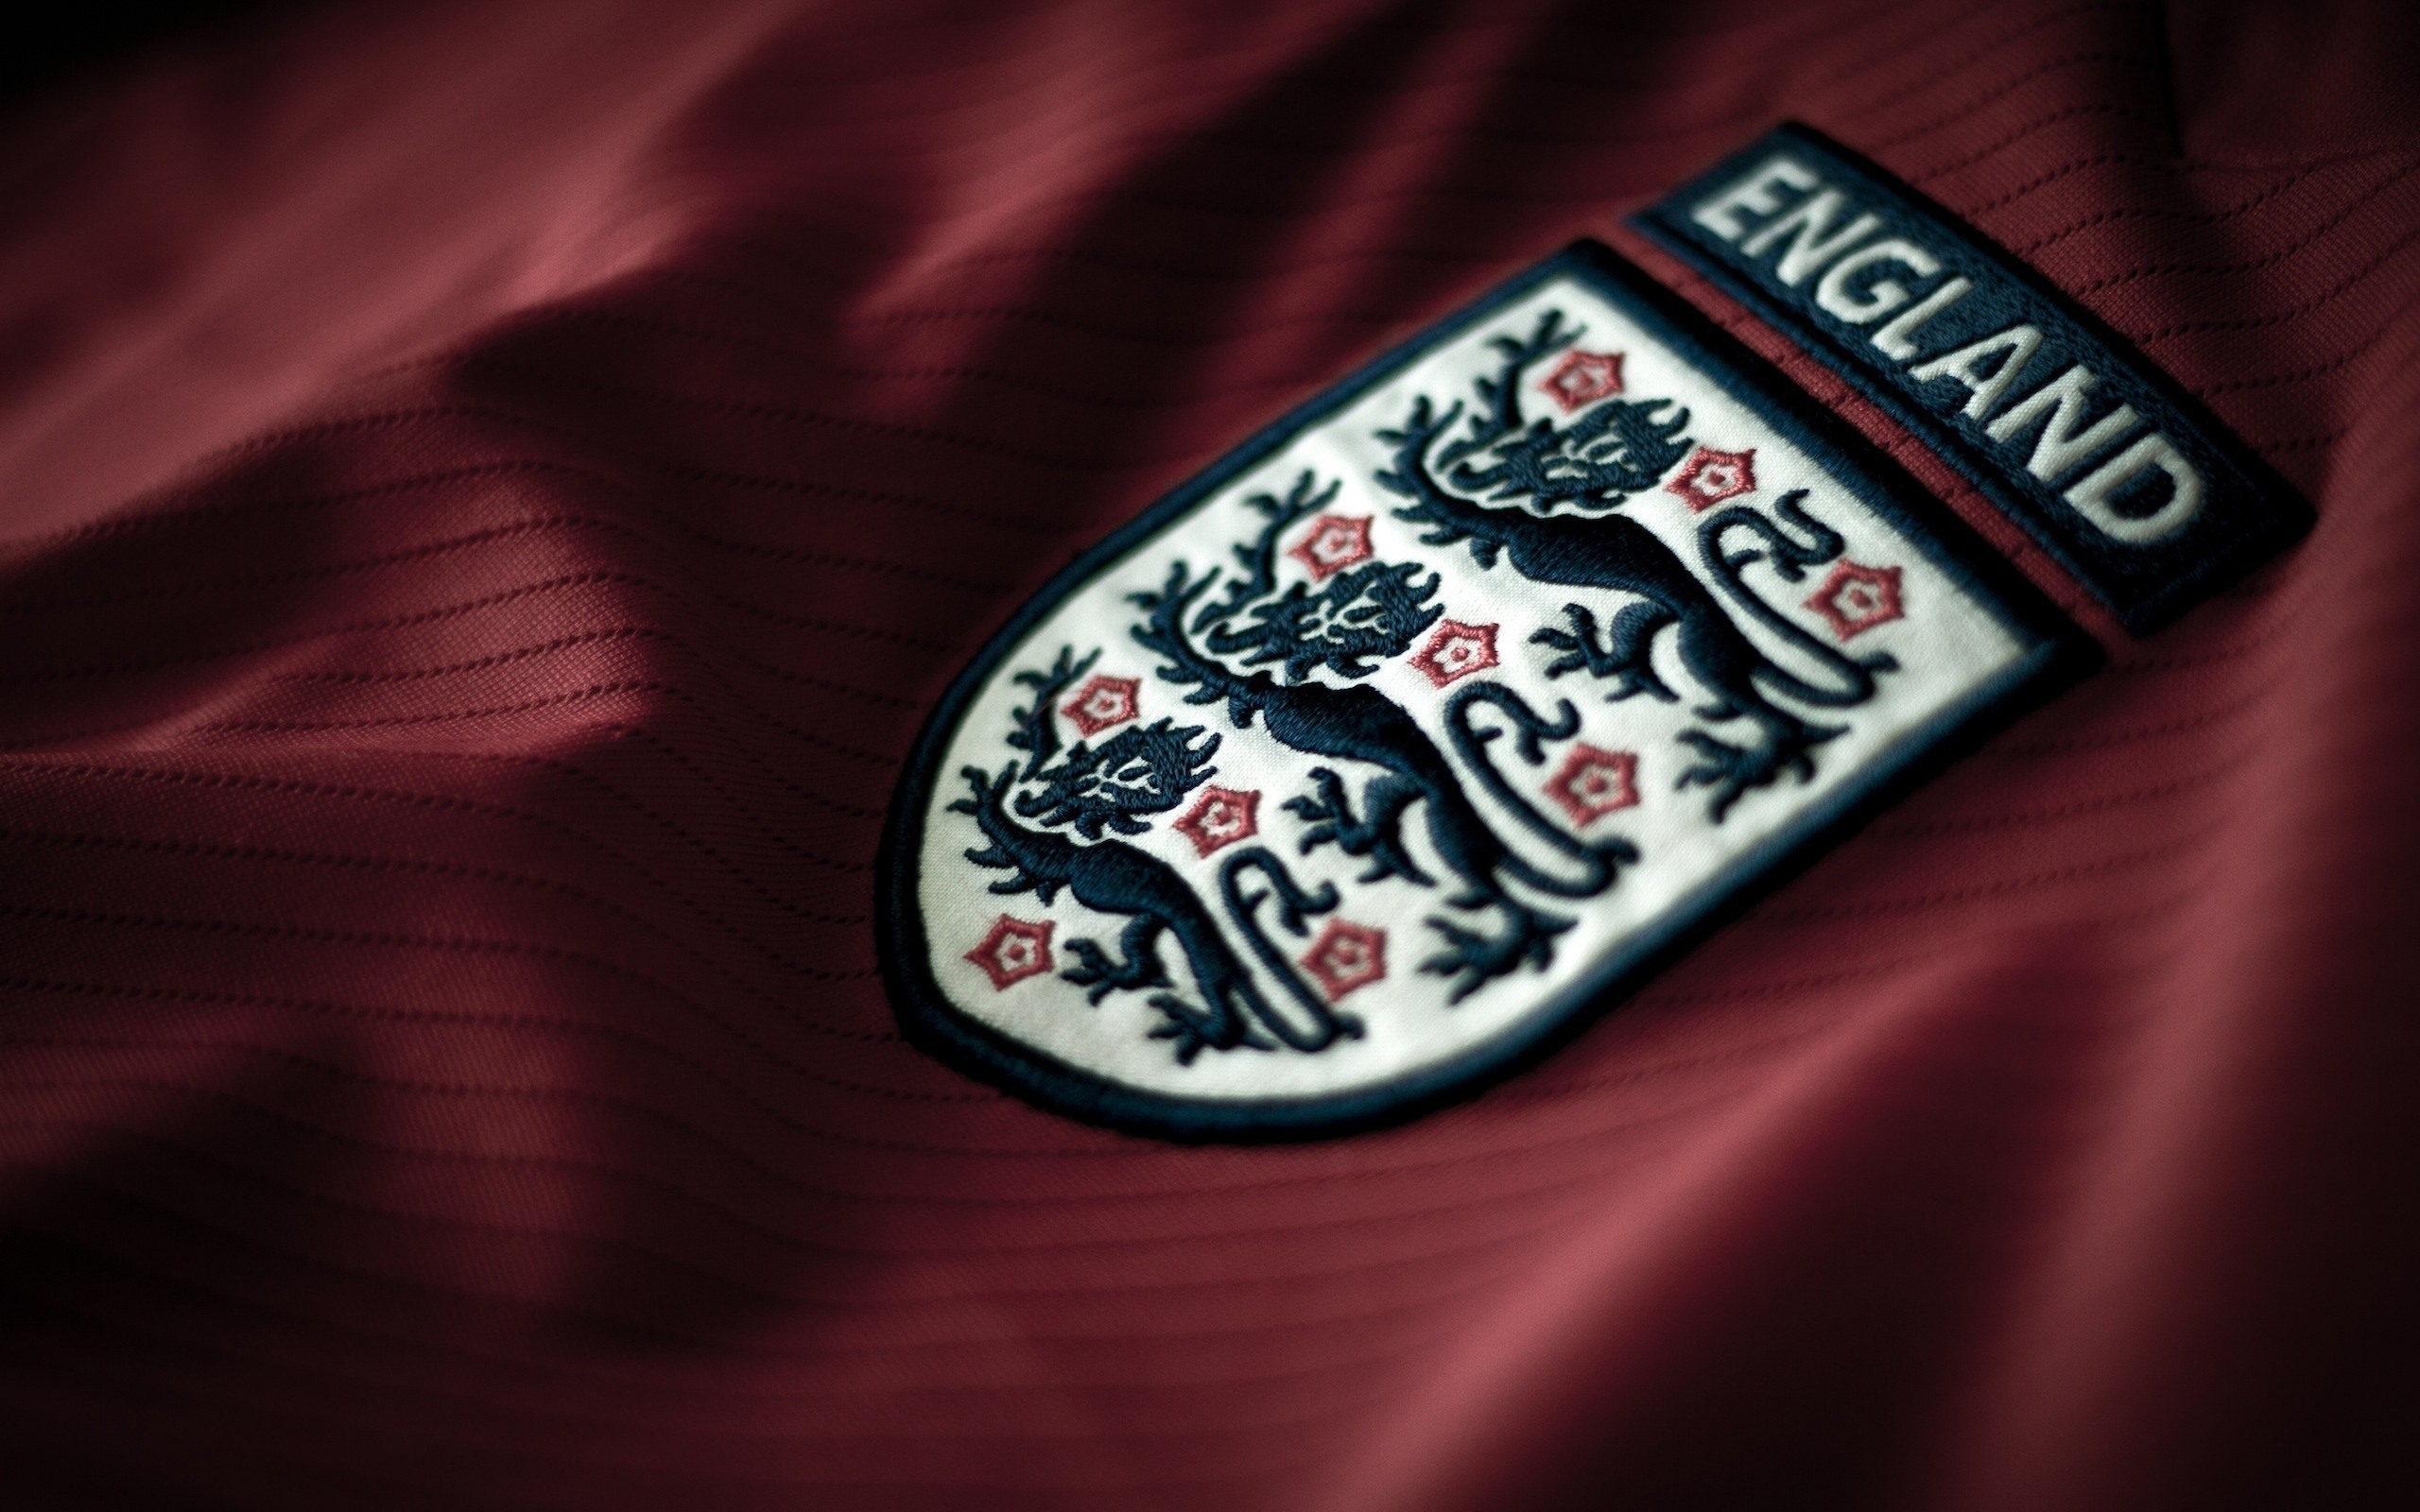 2560x1600 england-football-logo-wallpaper